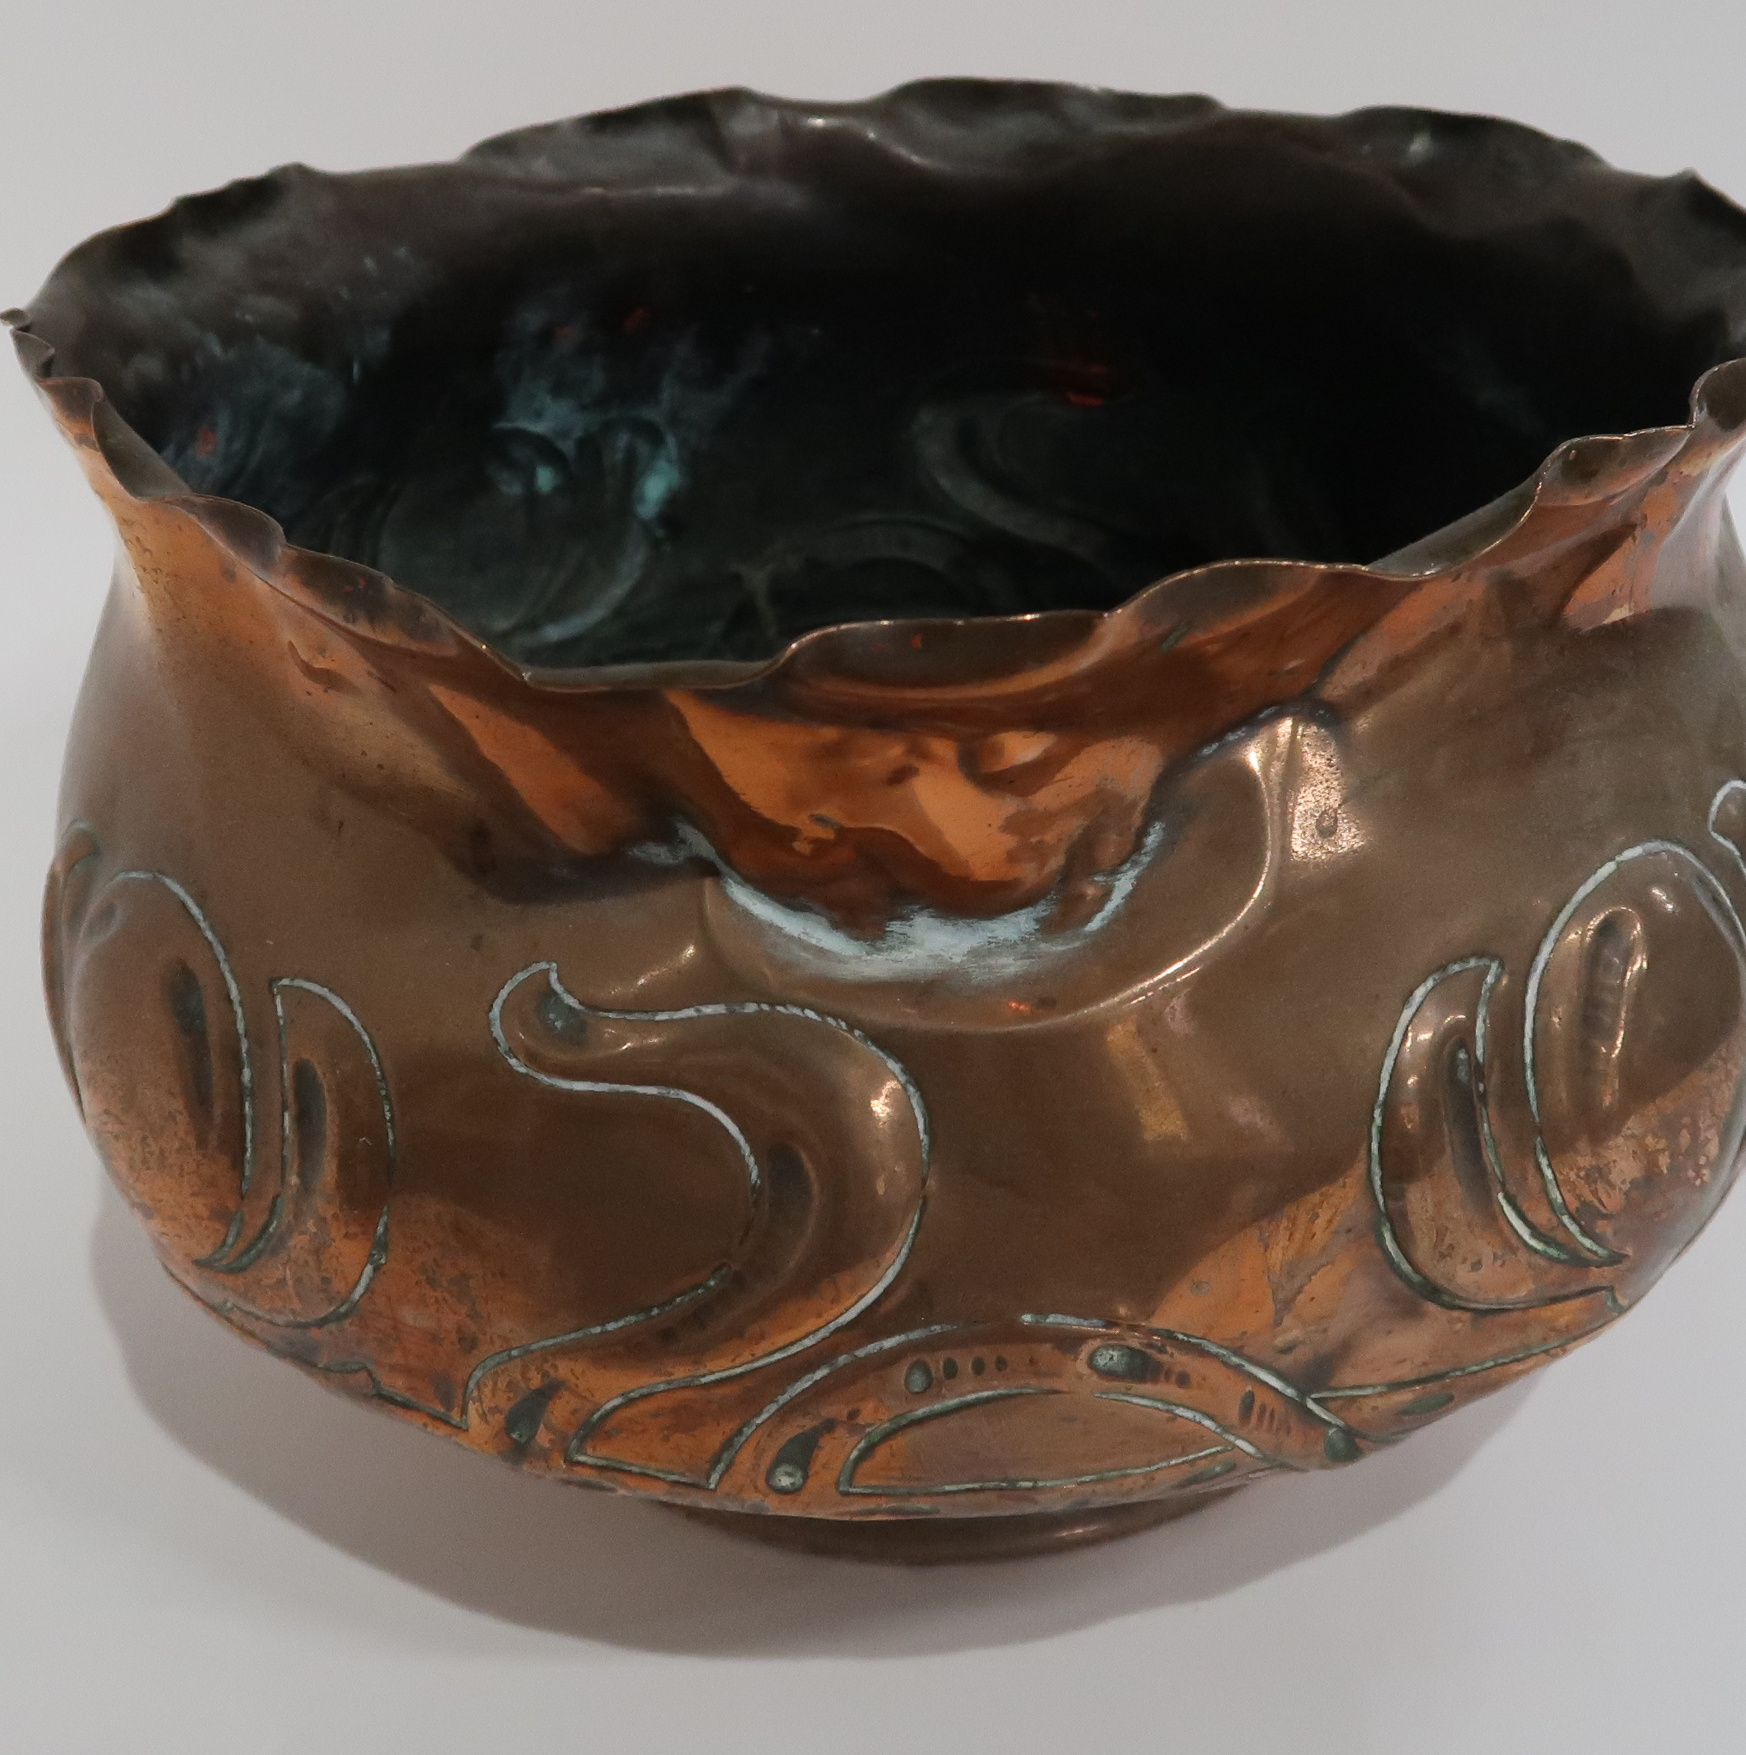 A WILLIAM SOUTTER AND SONS COPPER JARDINIERE two brass celtic knotwork trinket dishes, a similar - Image 4 of 4